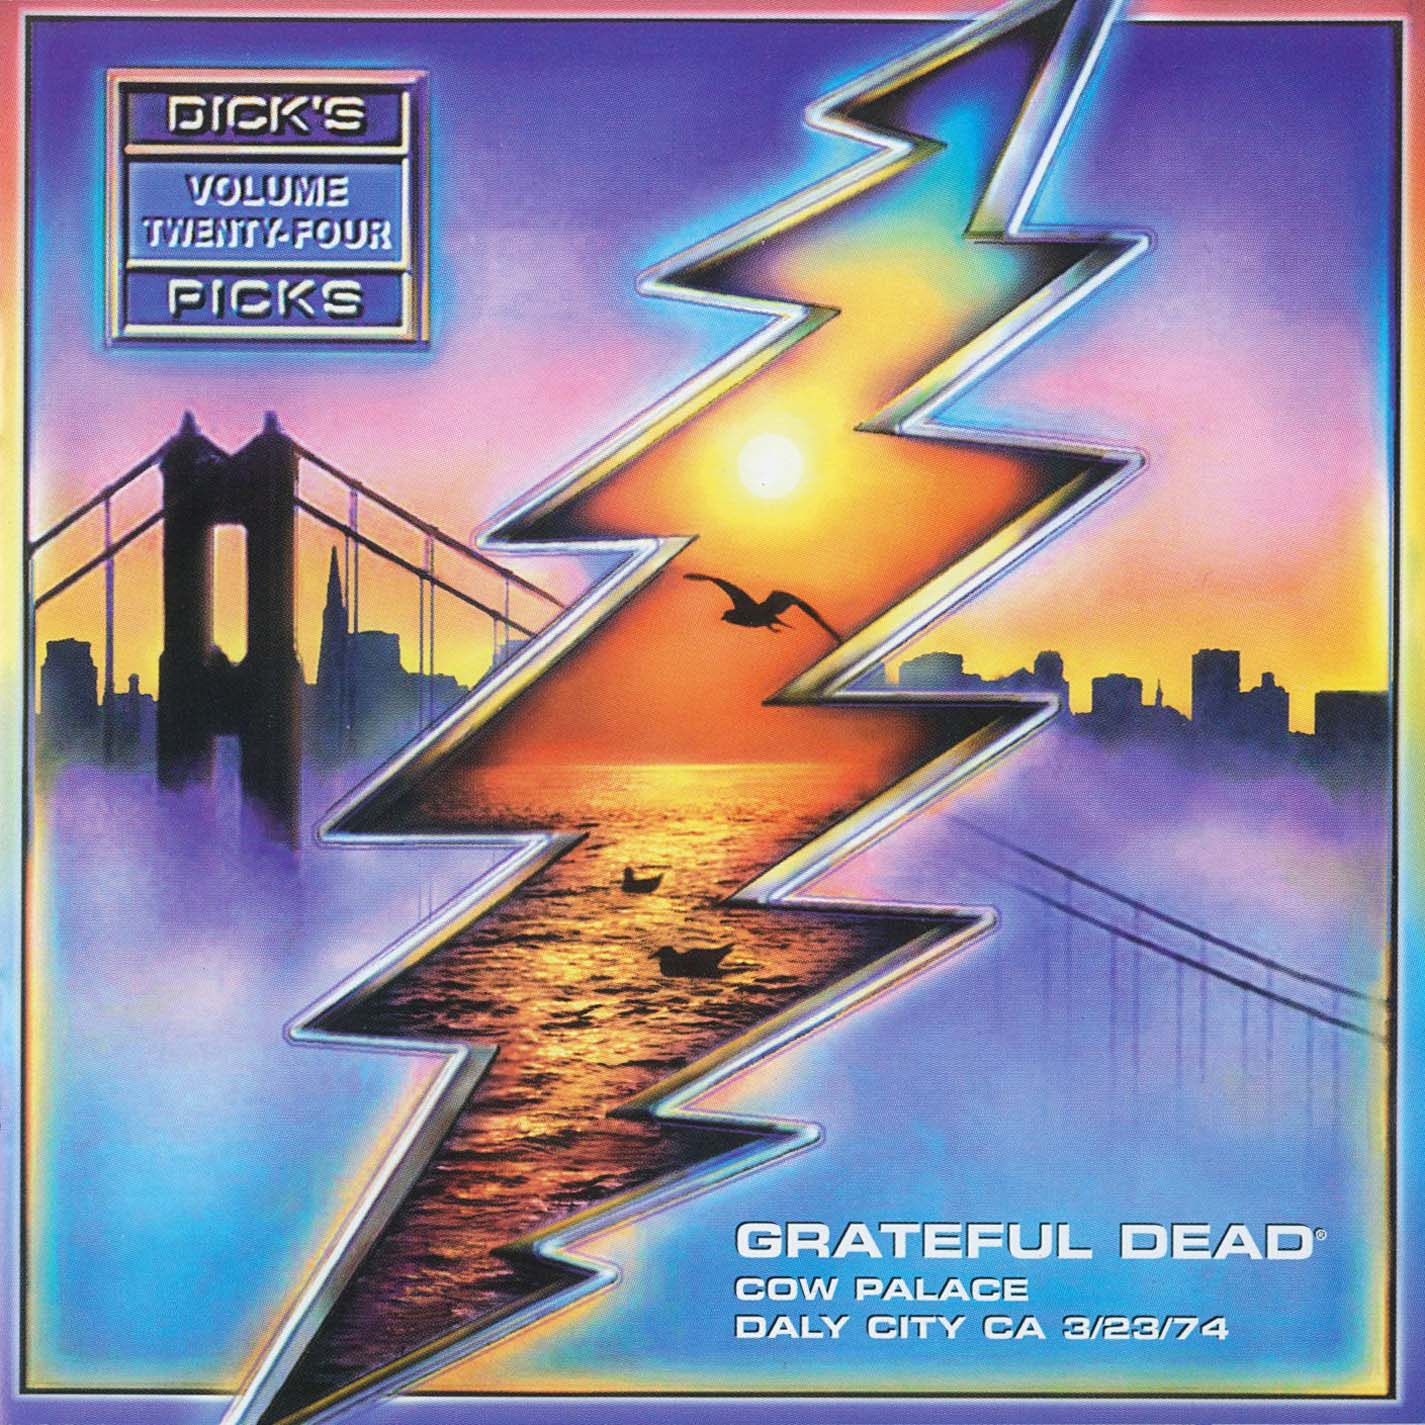 Grateful Dead Dick's Picks 24 album cover artwork